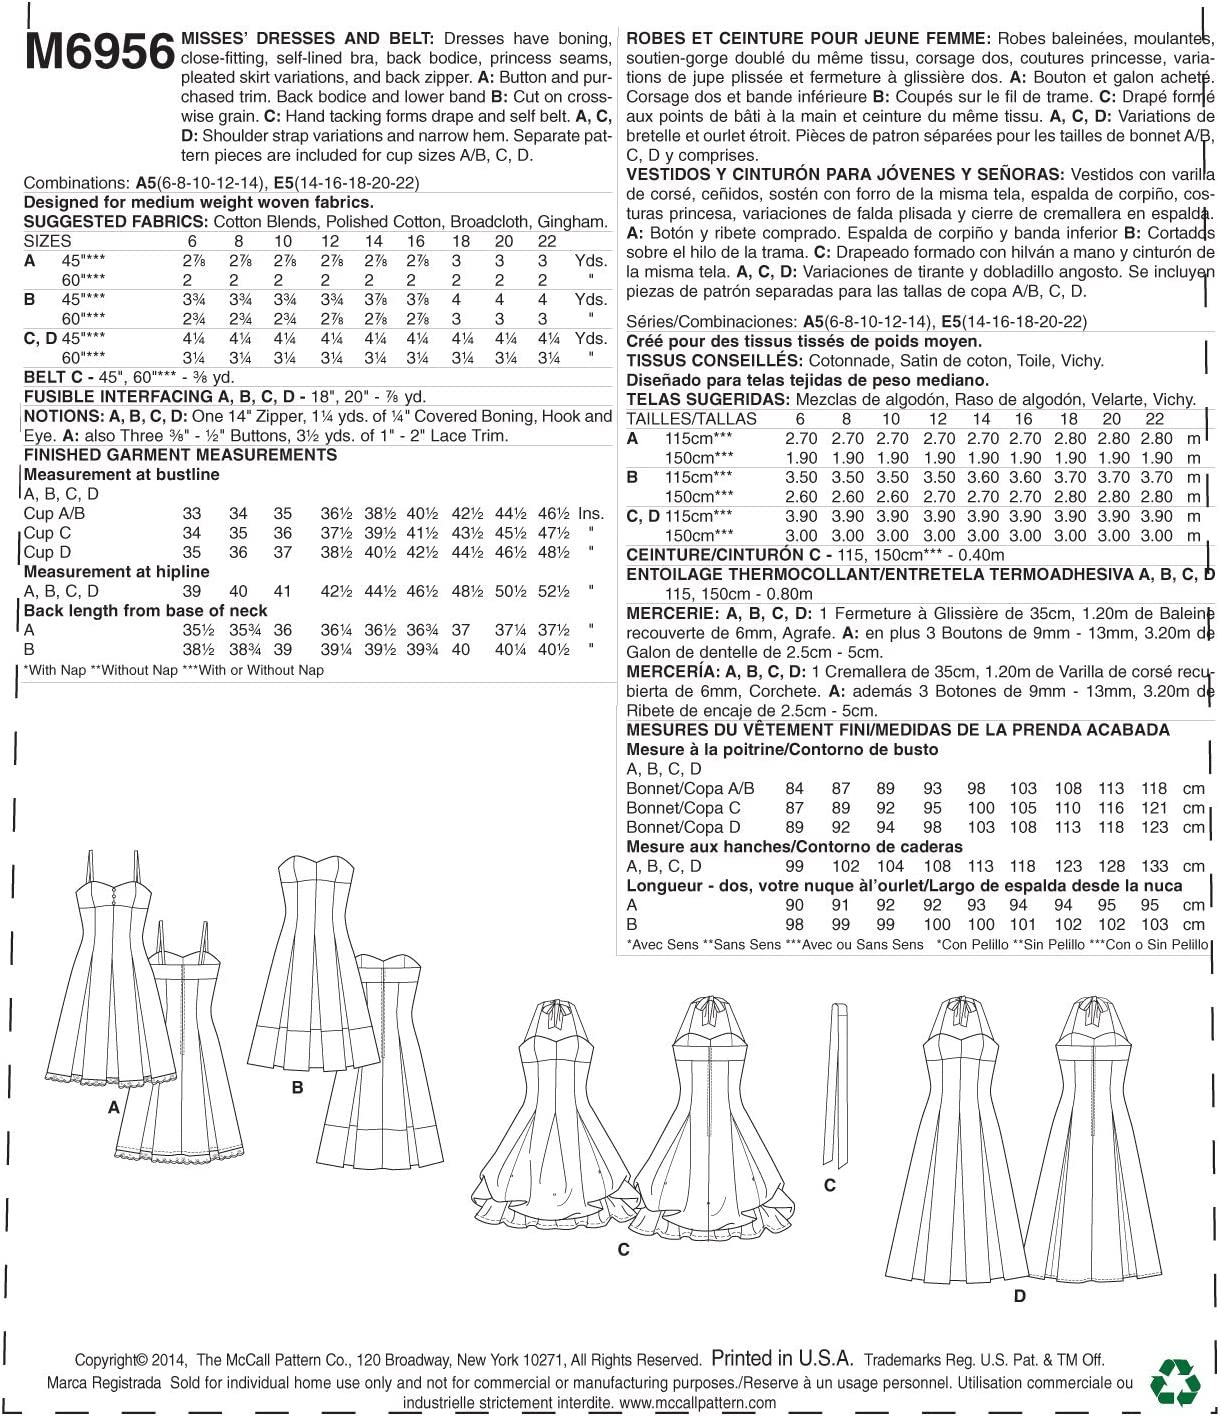 McCall Pattern Company M6956 Misses Dresses and Belt Size A56-8-10-12-14